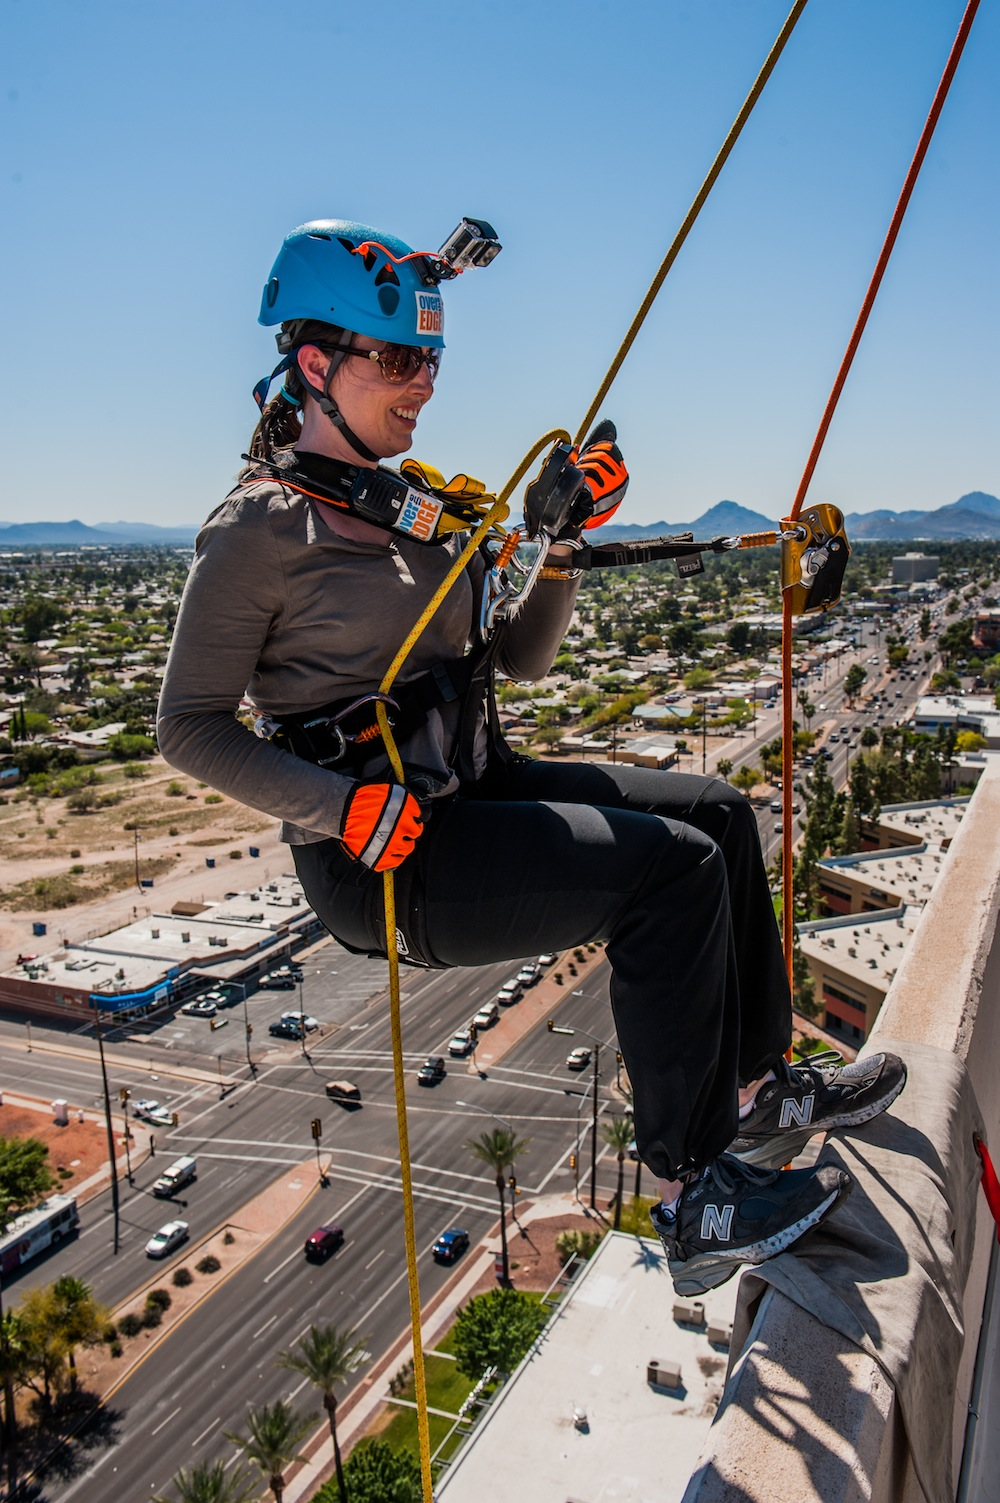 Over the edge 4